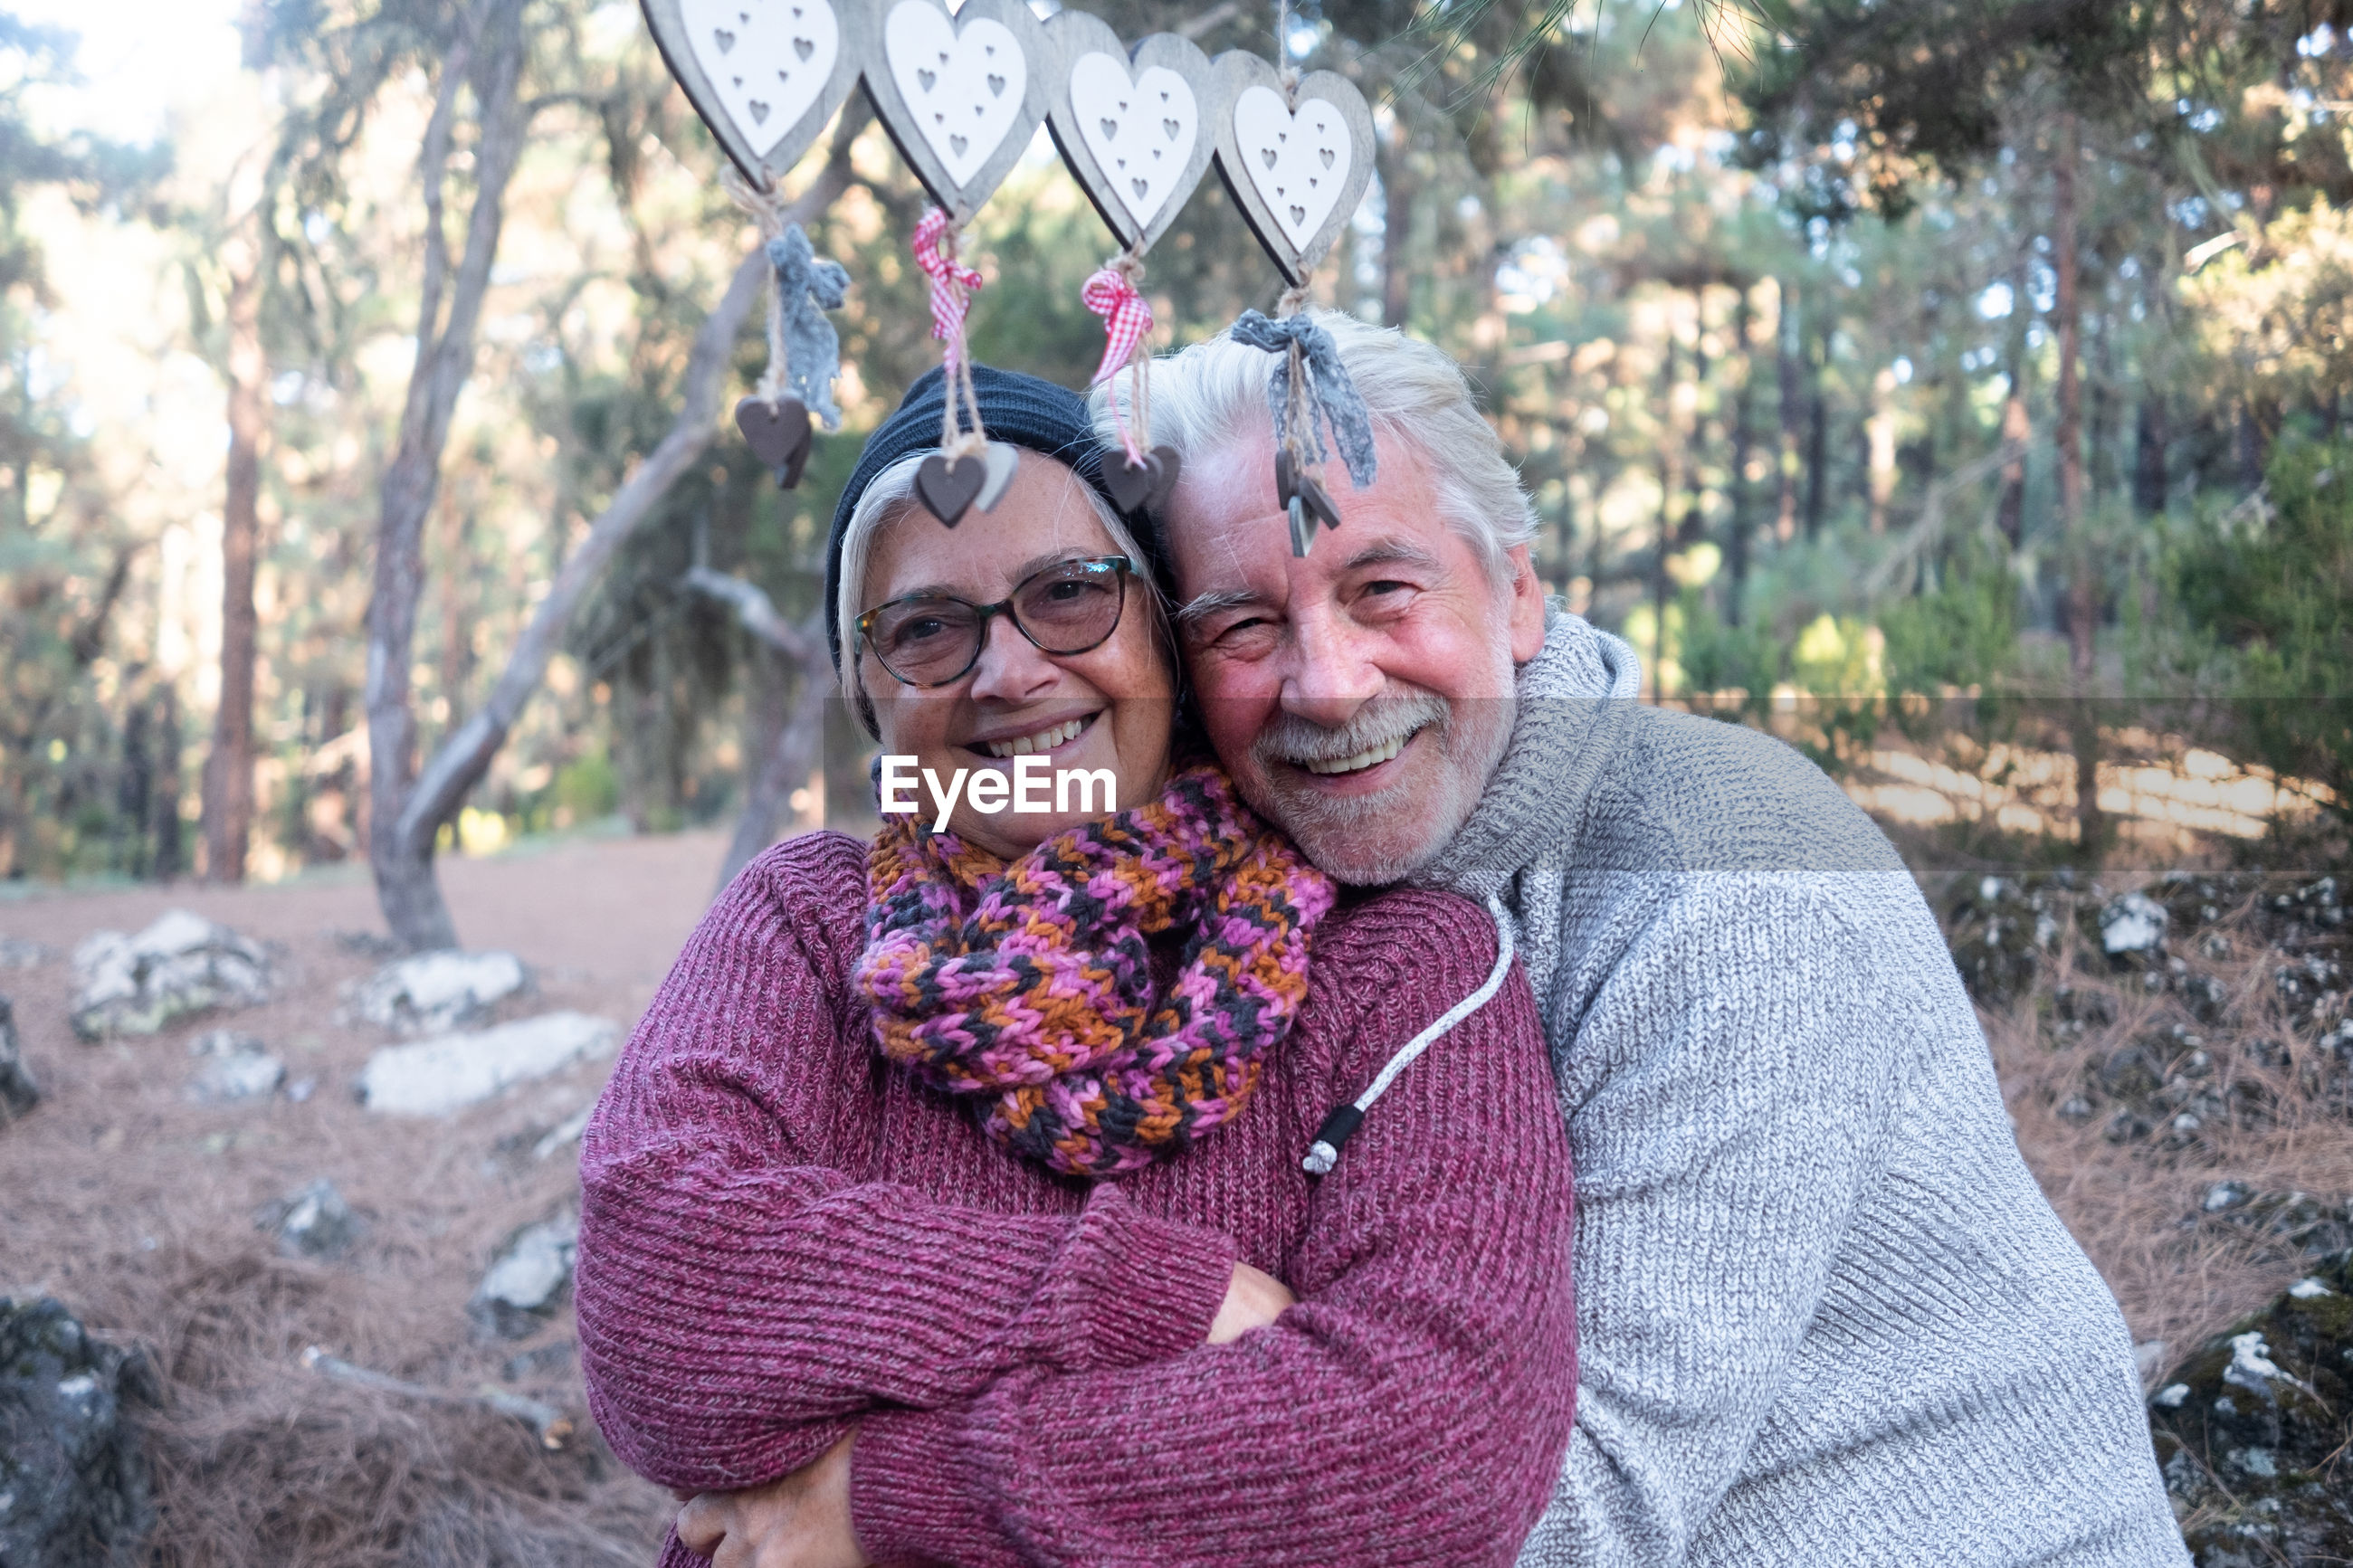 Portrait of smiling man and woman embracing against trees in forest